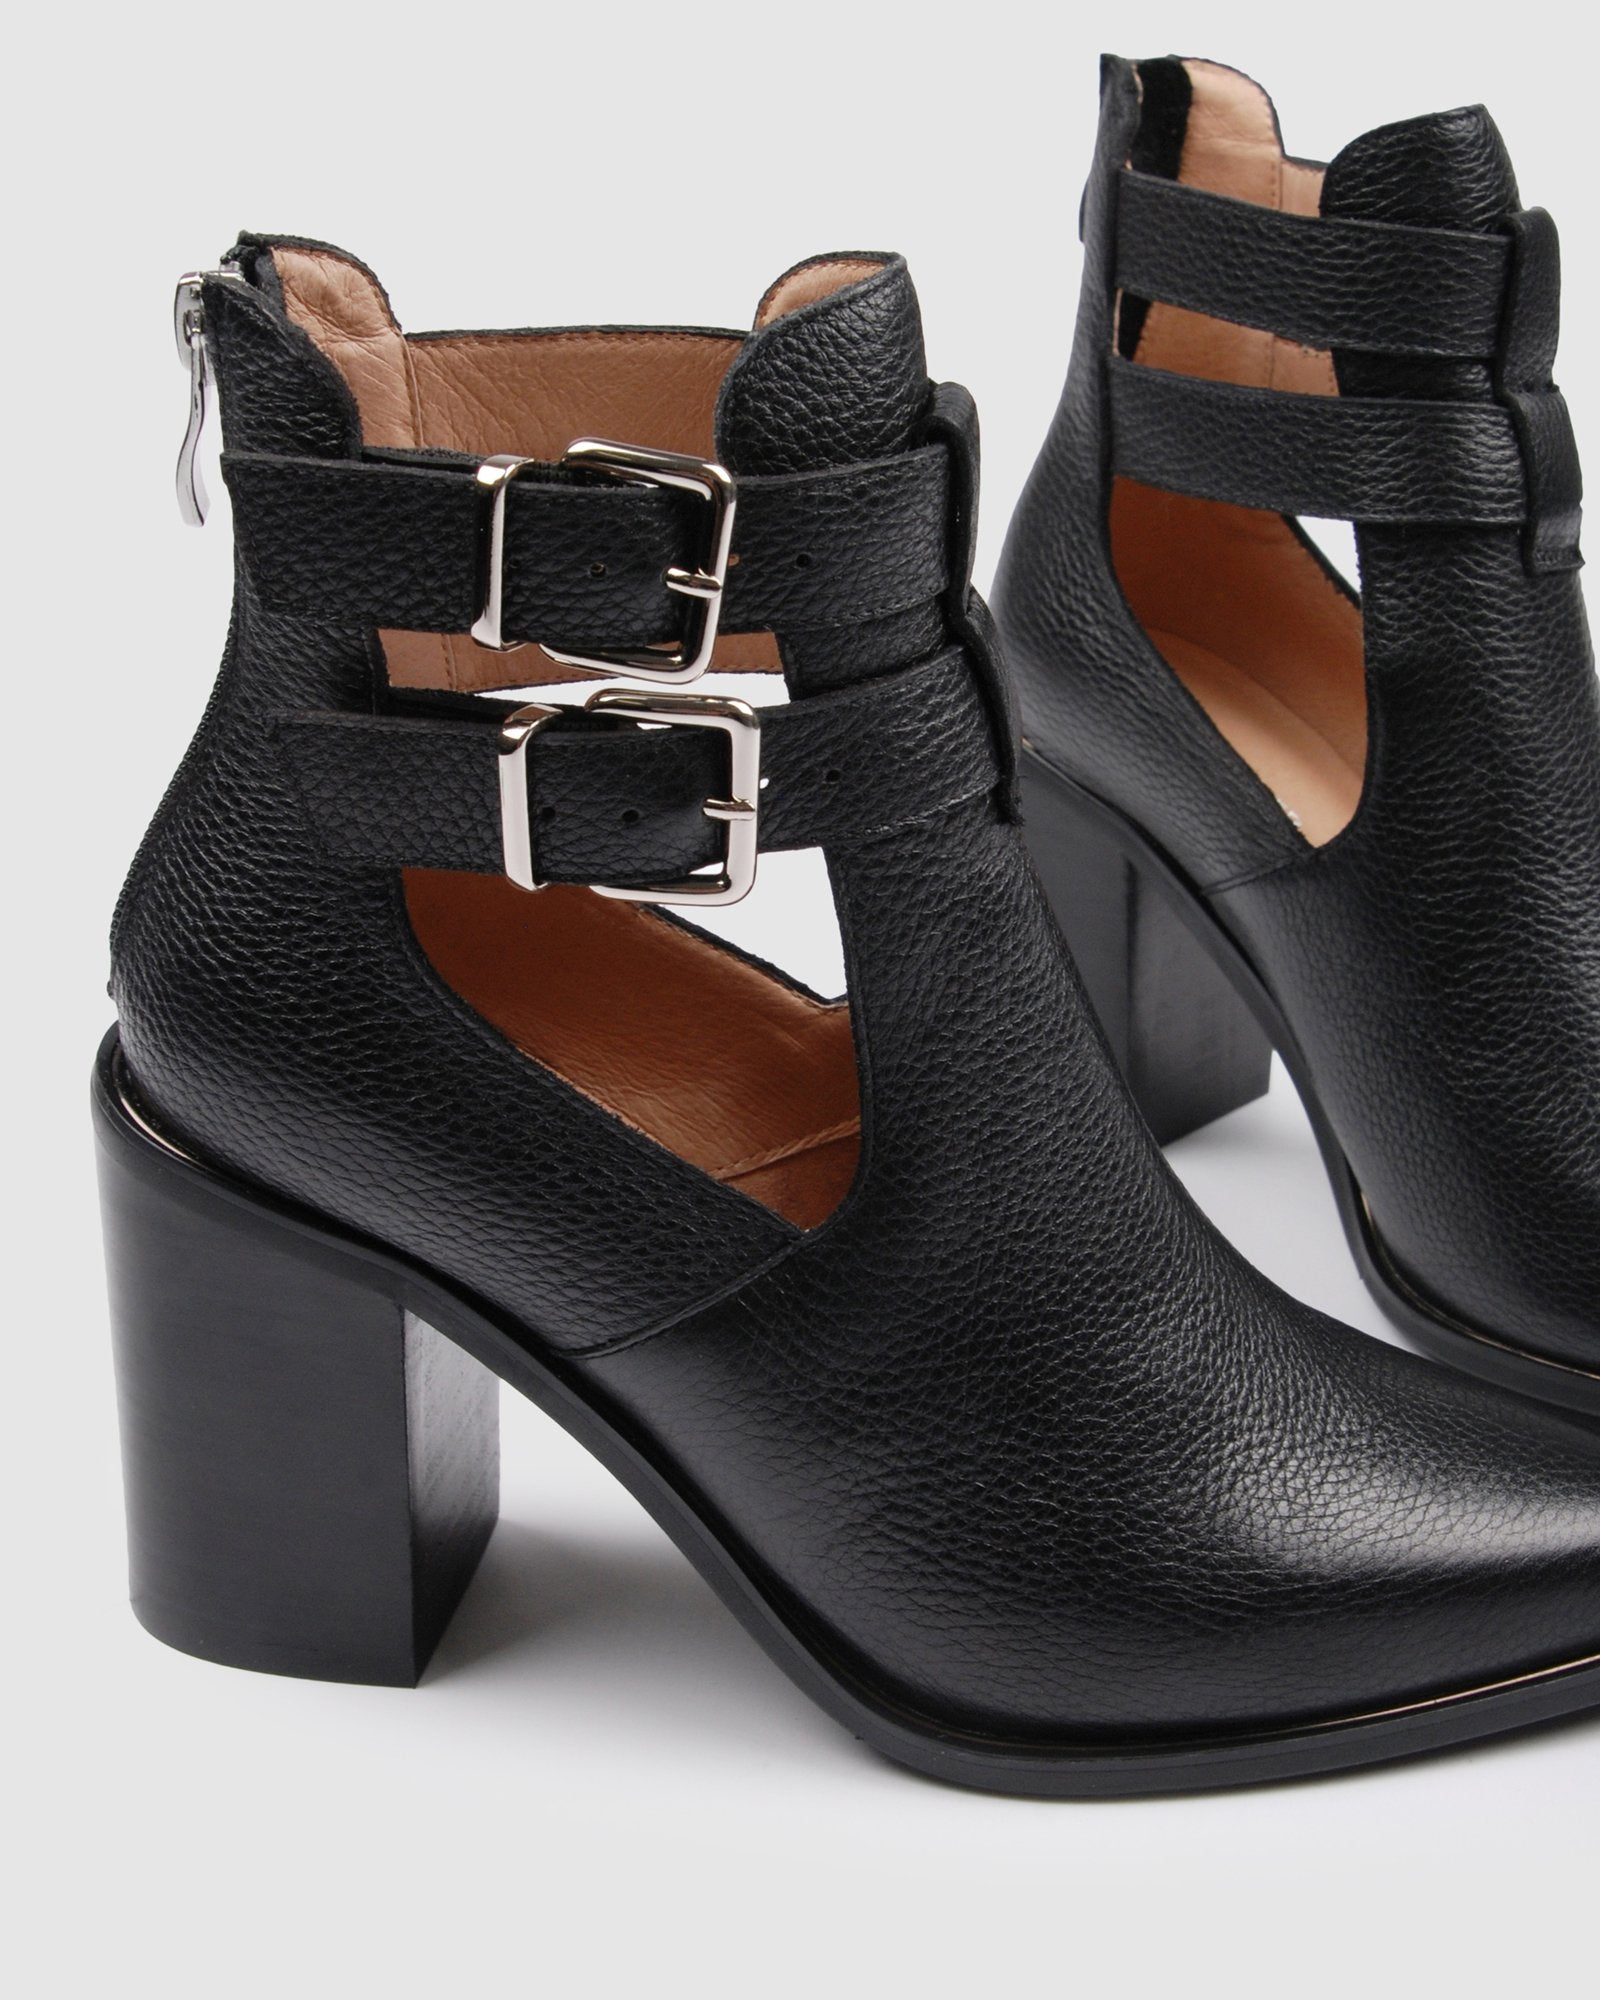 LUCY HIGH ANKLE BOOTS BLACK LEATHER